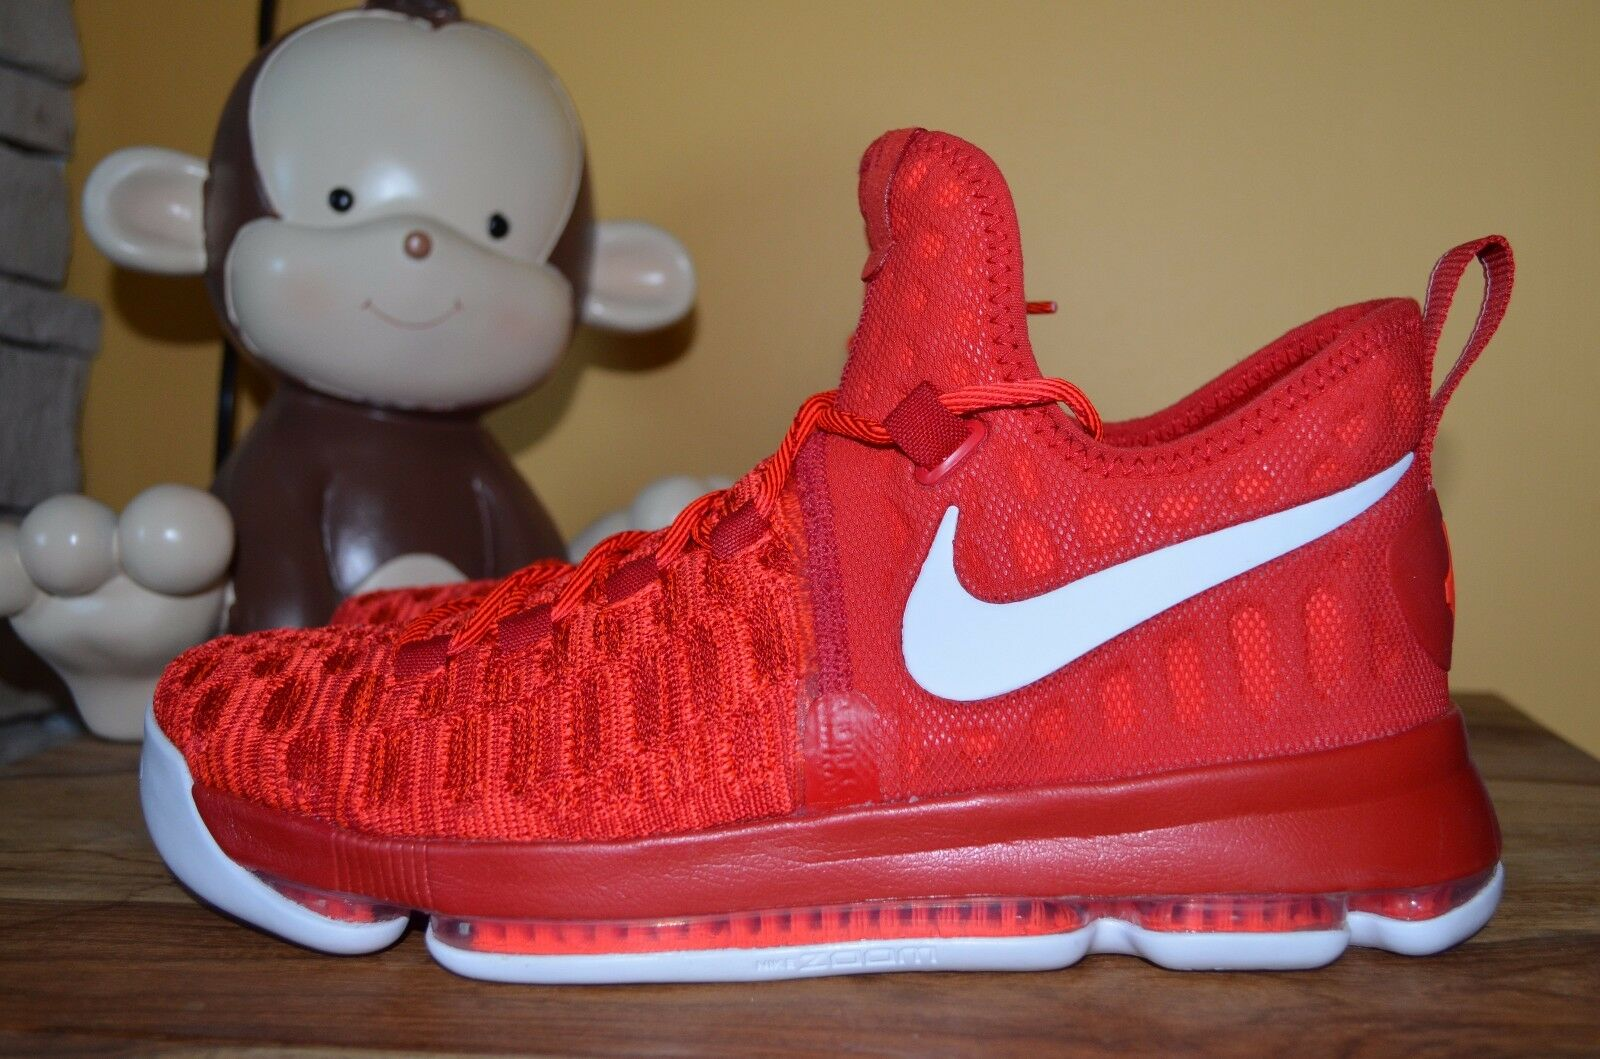 Nuove nike zoom kd 9 razzi kevin durant durant kevin 10 universit rosso / bianco 843392-611 11,5 1e9fe6